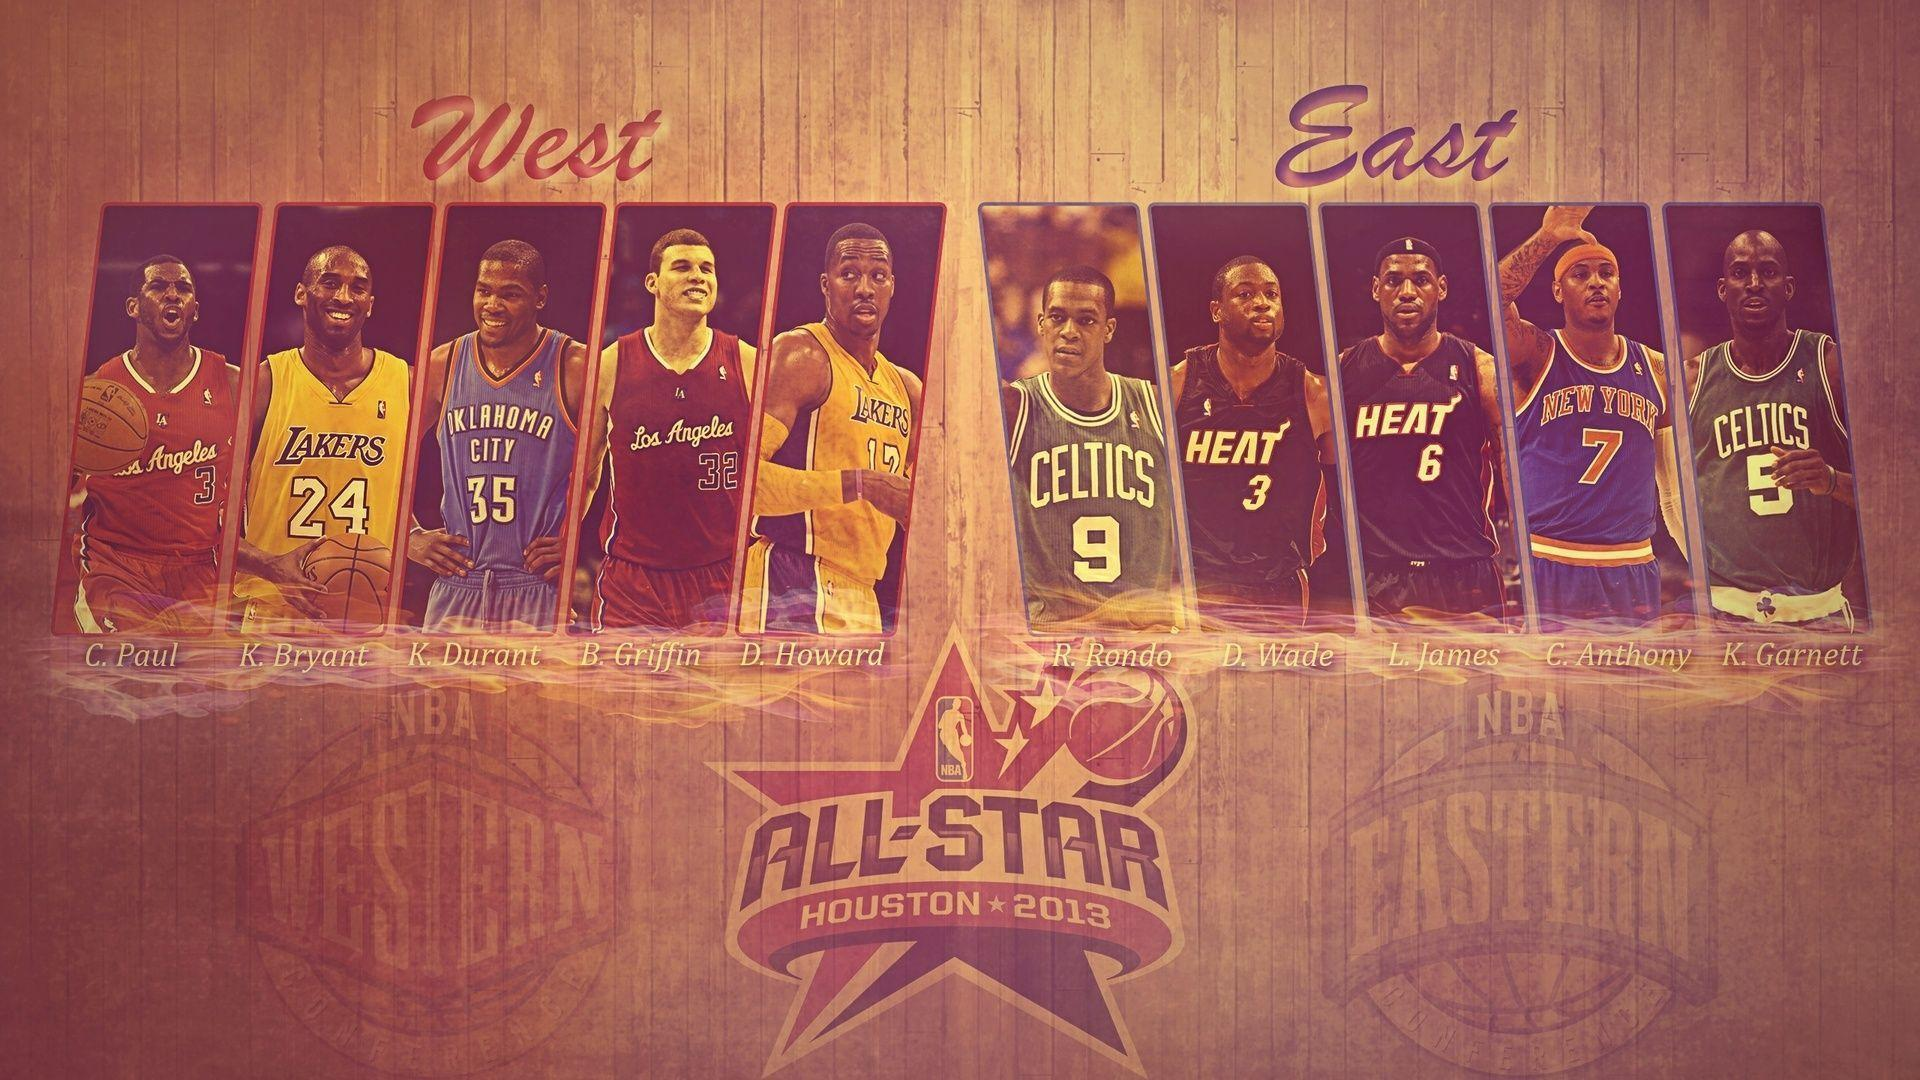 1920x1080 All Star, Kevin Durant, Nba, Basketball, West, Kobe